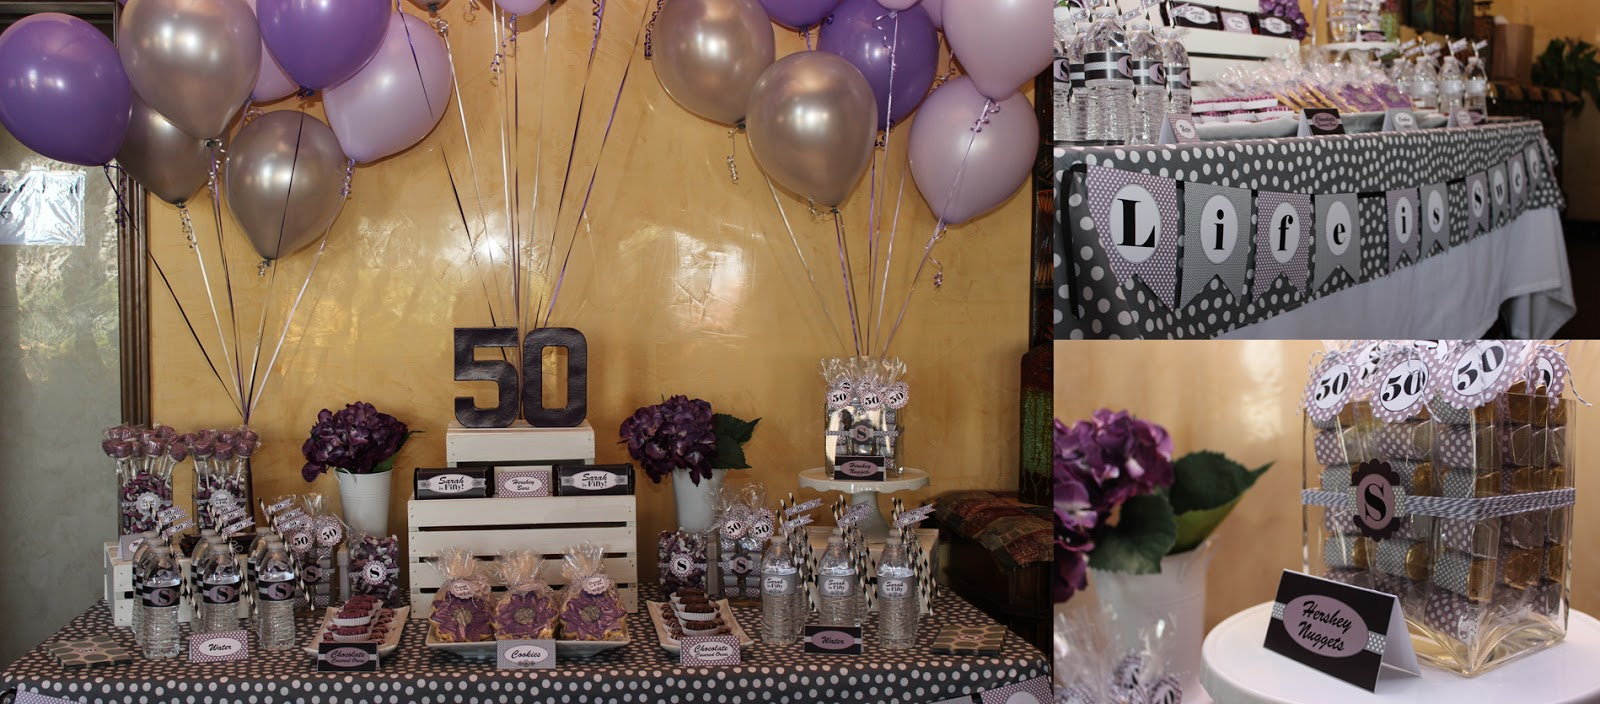 The sugar bee bungalow party bee sarah 39 s 50th birthday for 50th birthday decoration ideas